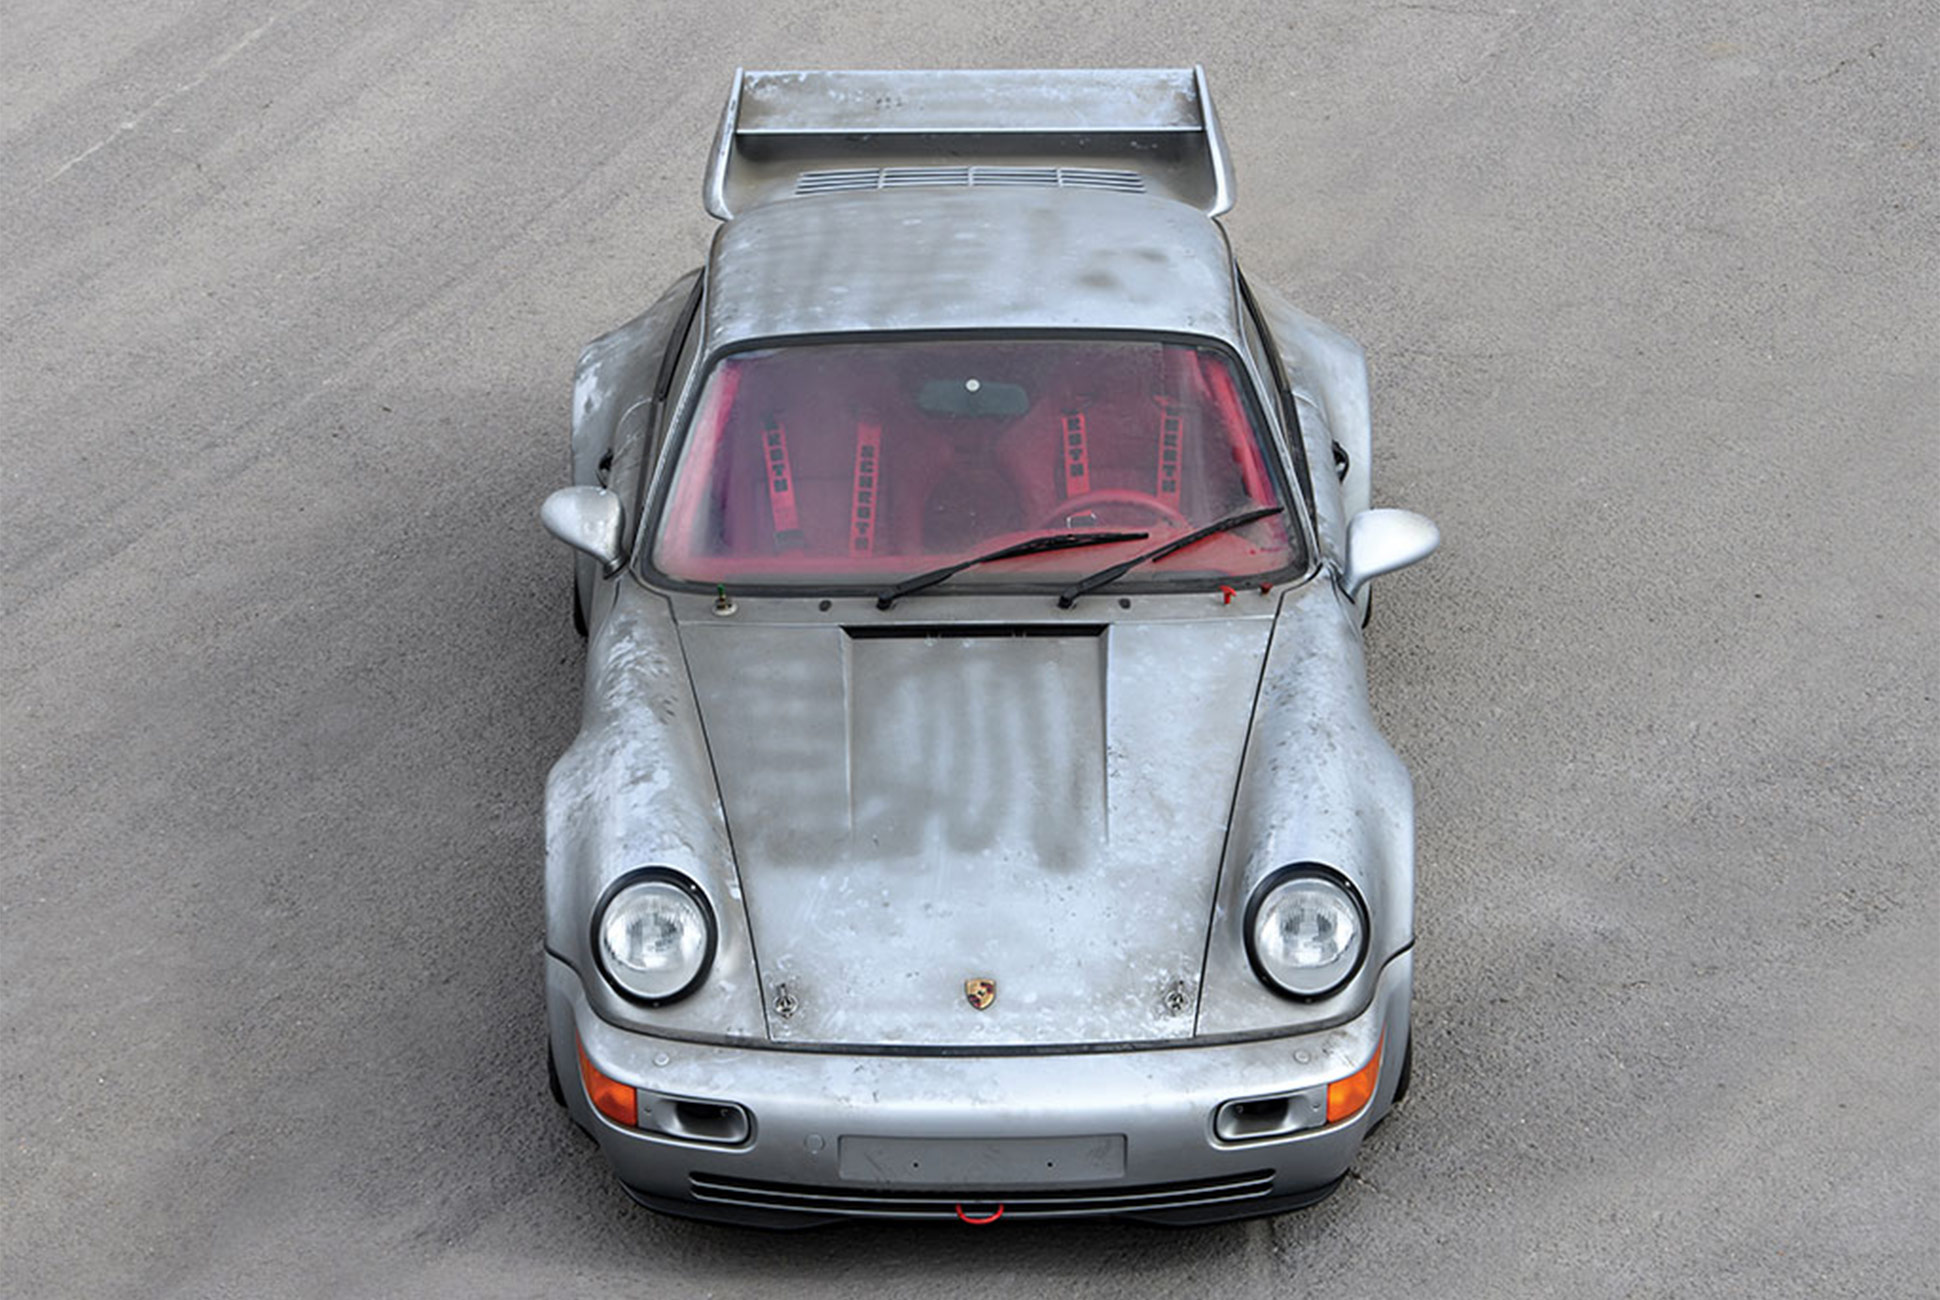 A 1993 Porsche 911 Carrera RSR 3.8 with Only 10 KM on the Odometer is Going to Auction 9